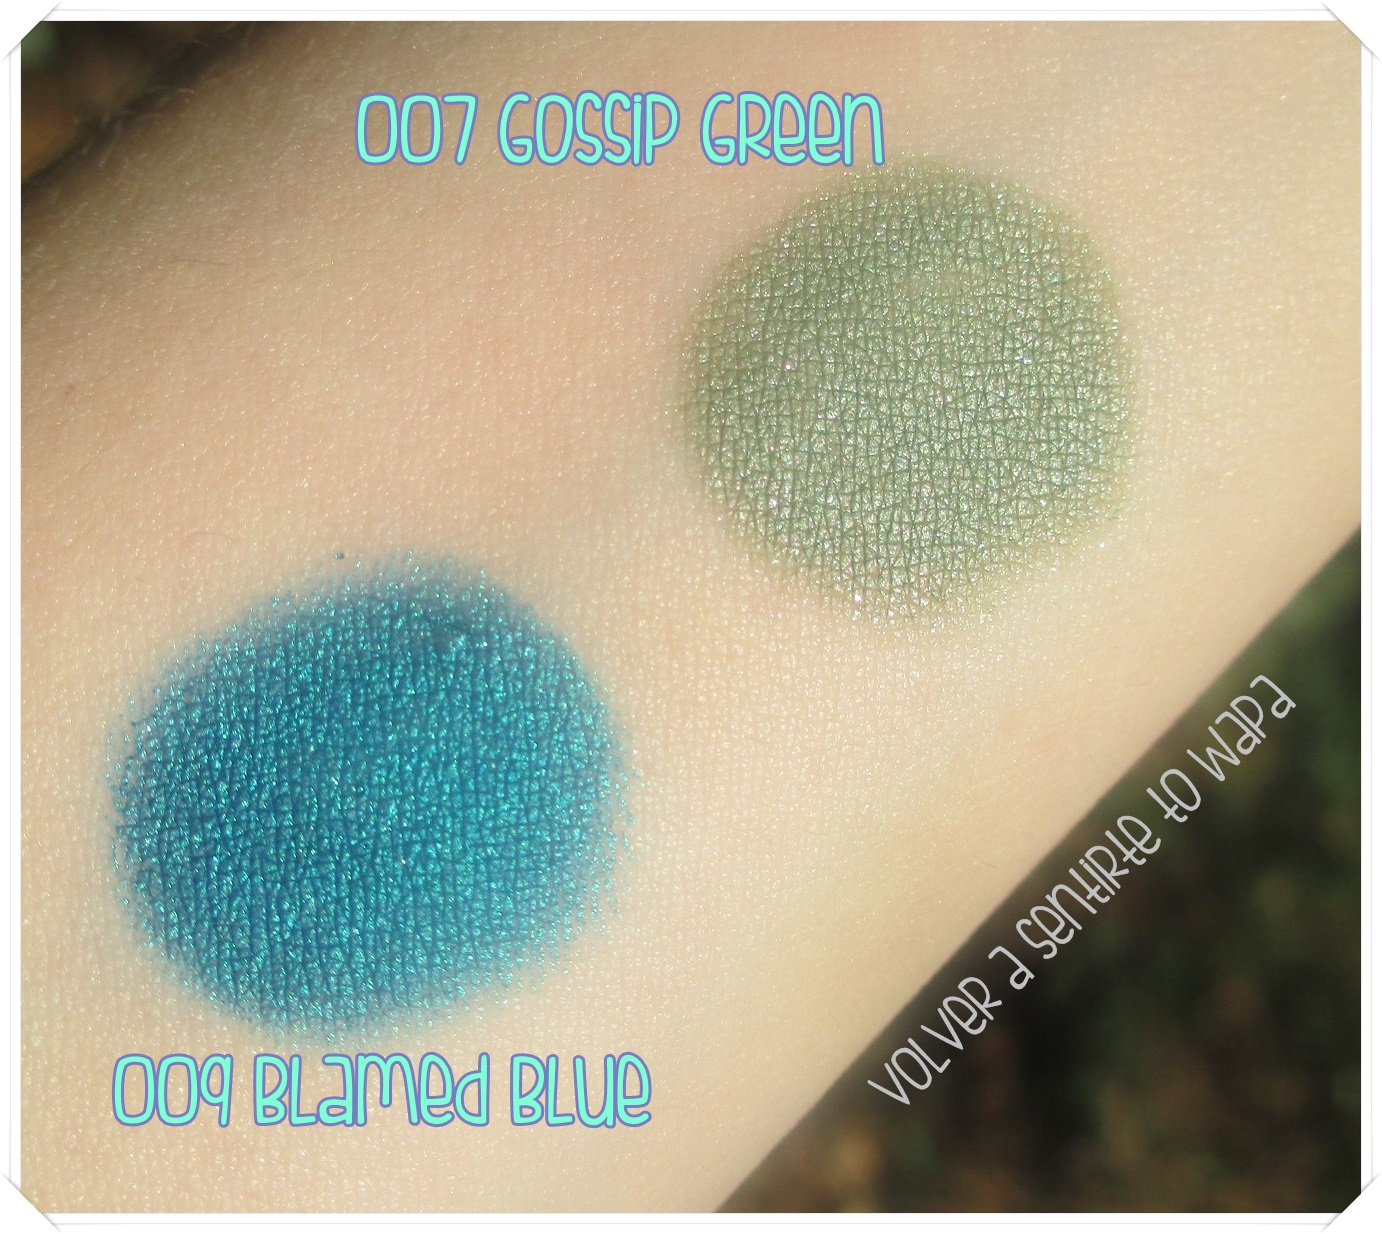 Scandaleyes Eye Shadow Stick de Rimmel London - 007 Gossip Girl y 009 Blamed Blue {Swatches}